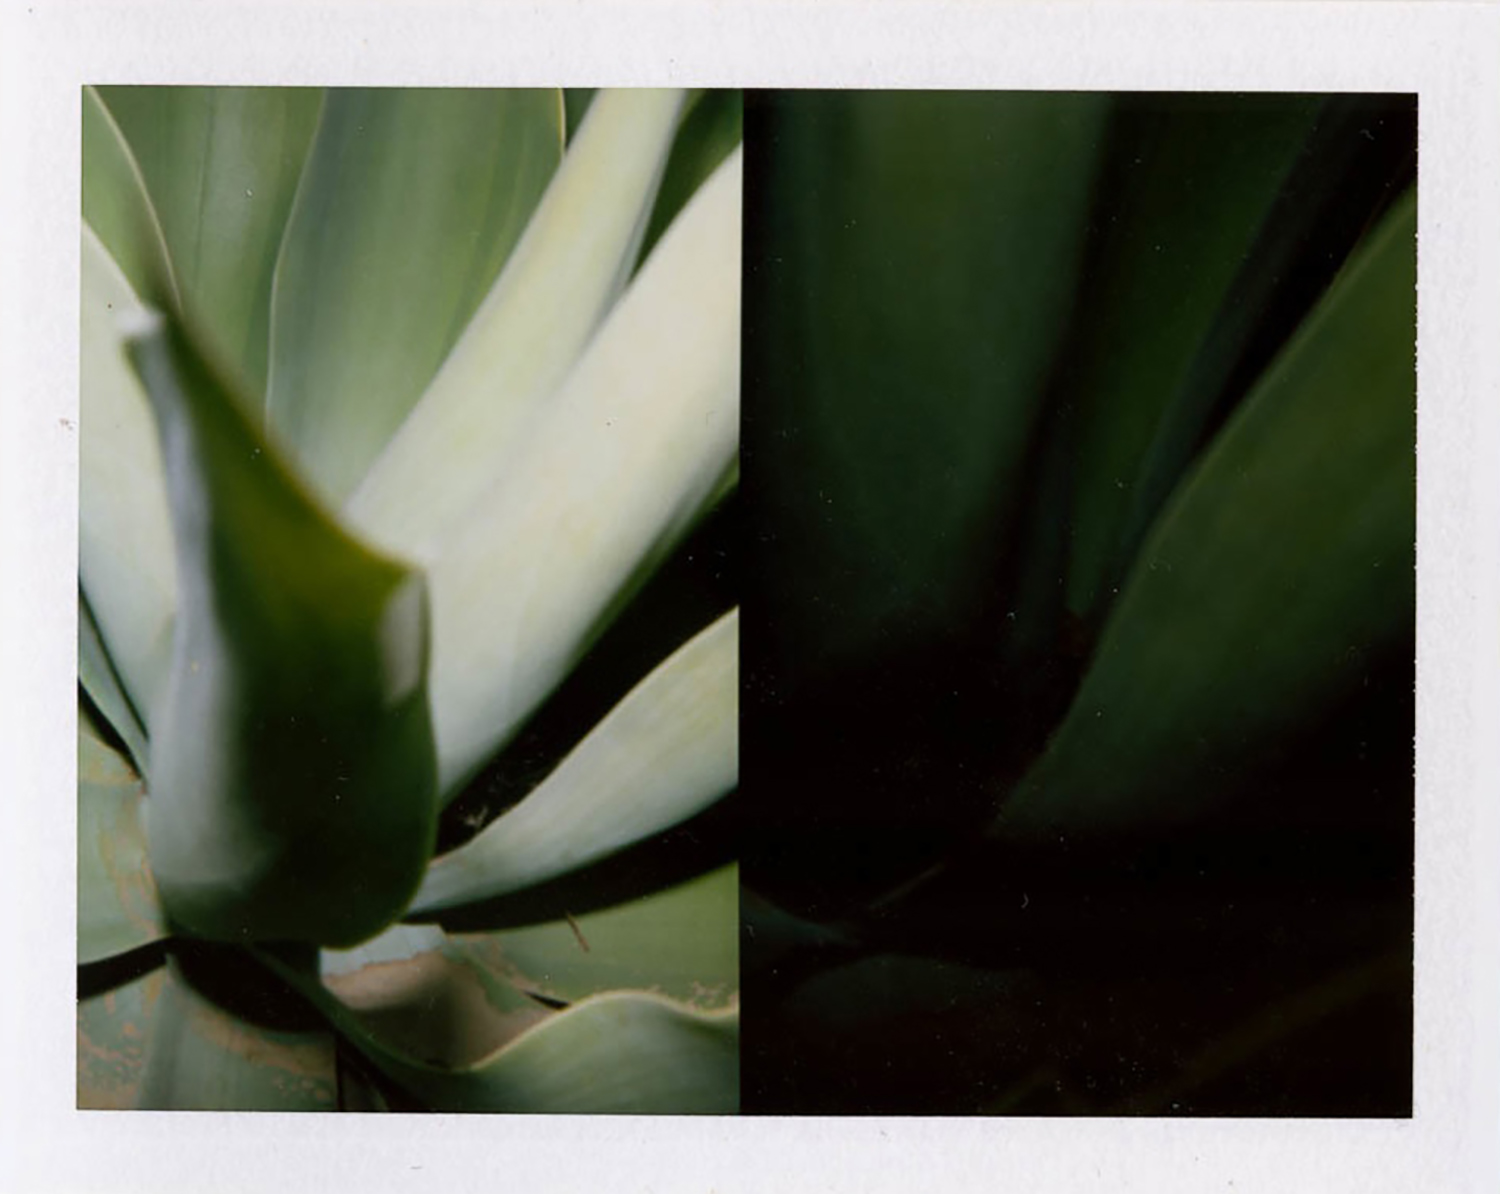 I.D.040, The Polaroid Revolutionary Workers, 2013, Polaroid Picture, 107mm x 86mm